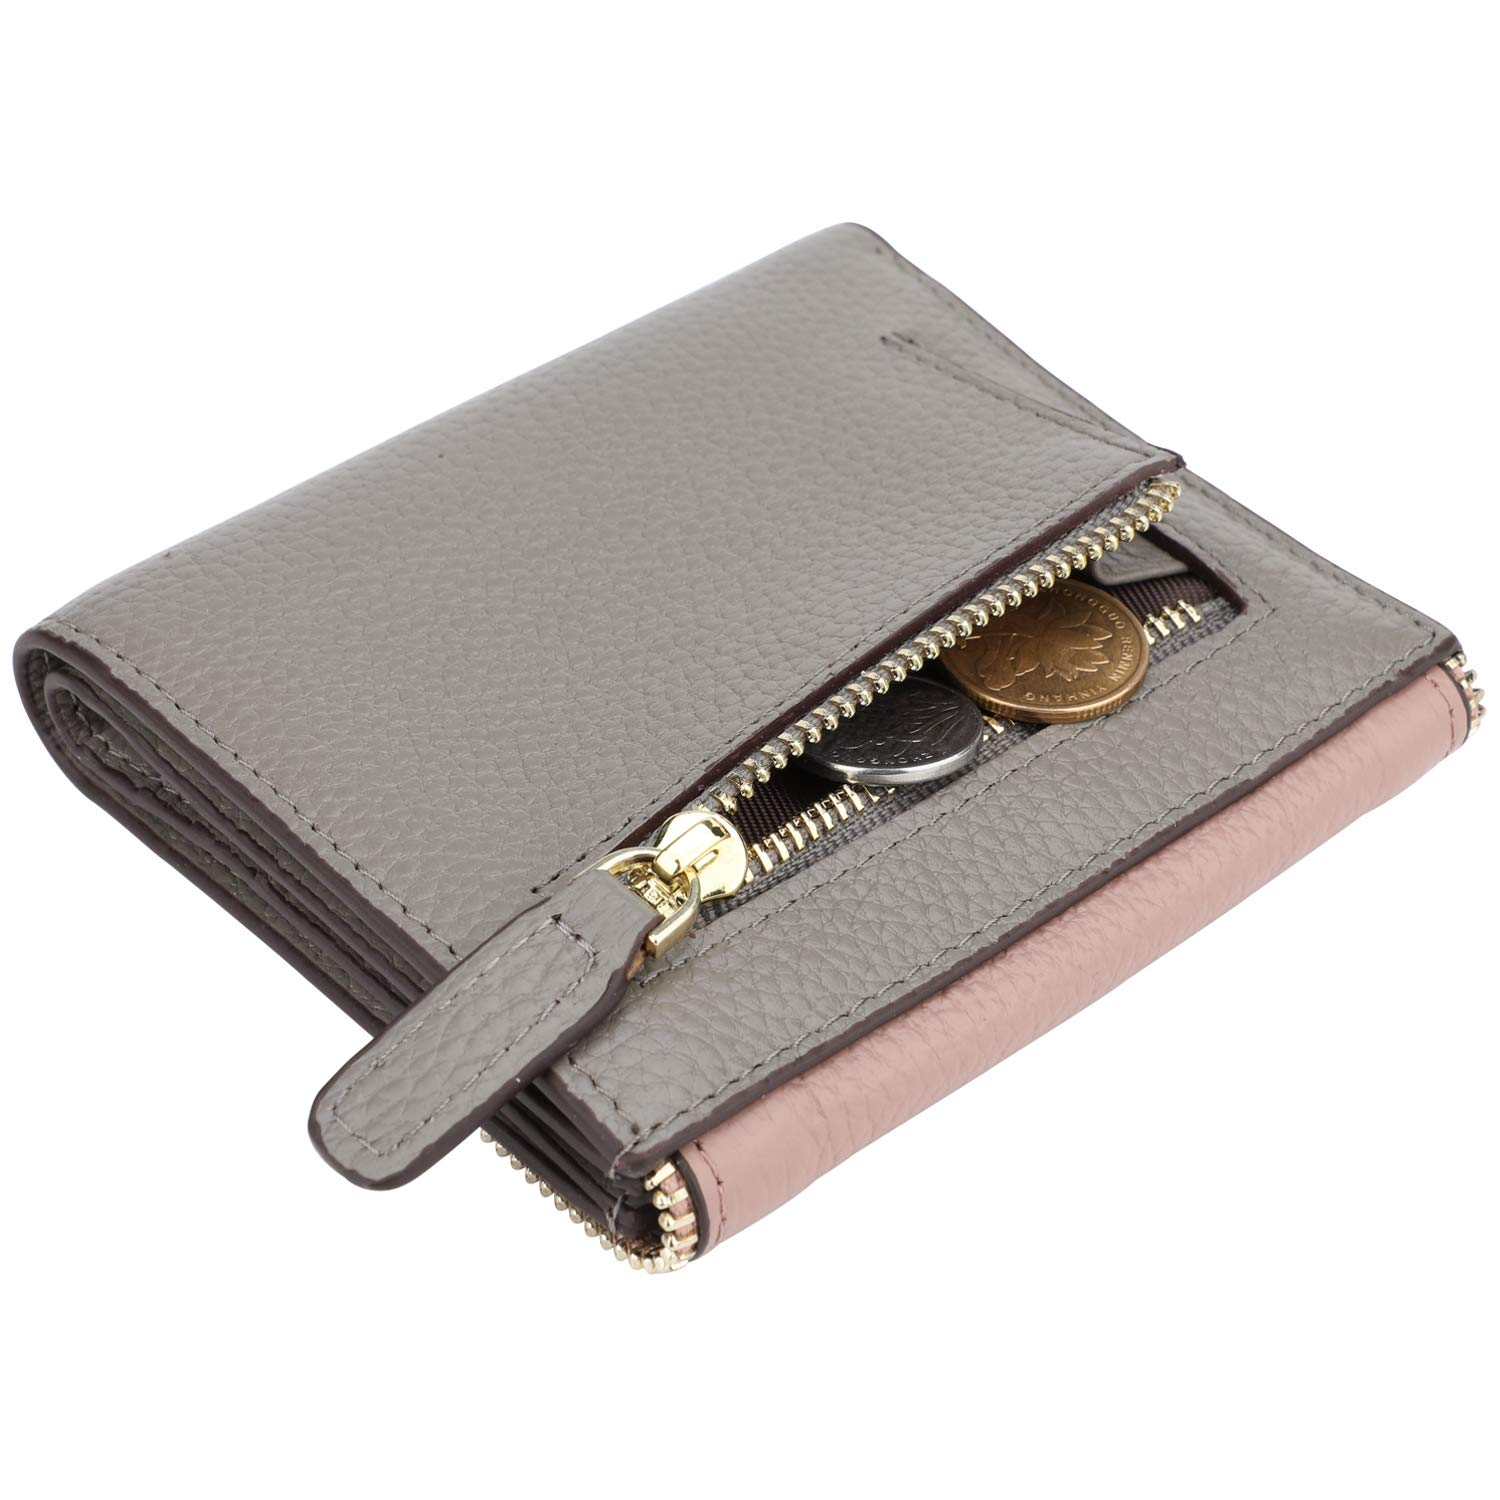 Lavemi RFID Blocking Small Compact Mini Bifold Credit Card Holder Leather Pocket Wallets for Women(Envelope Dark Pink)